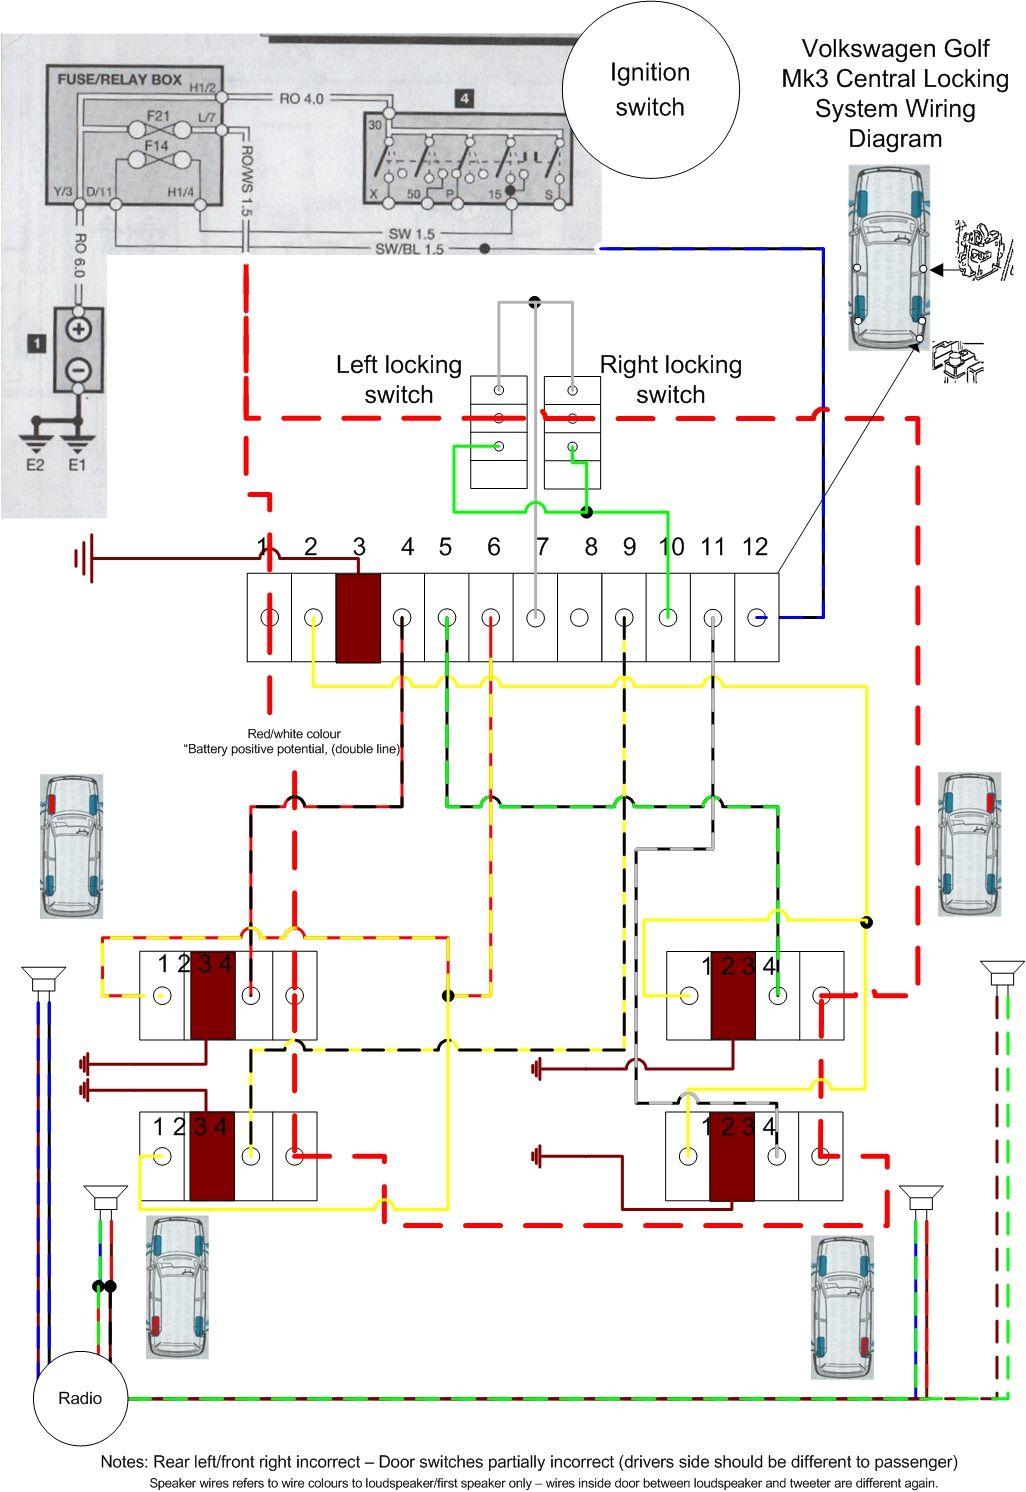 medium resolution of vw ignition switch wiring diagram another wiring diagram vw ignition switch wiring diagram vw ignition wiring diagram